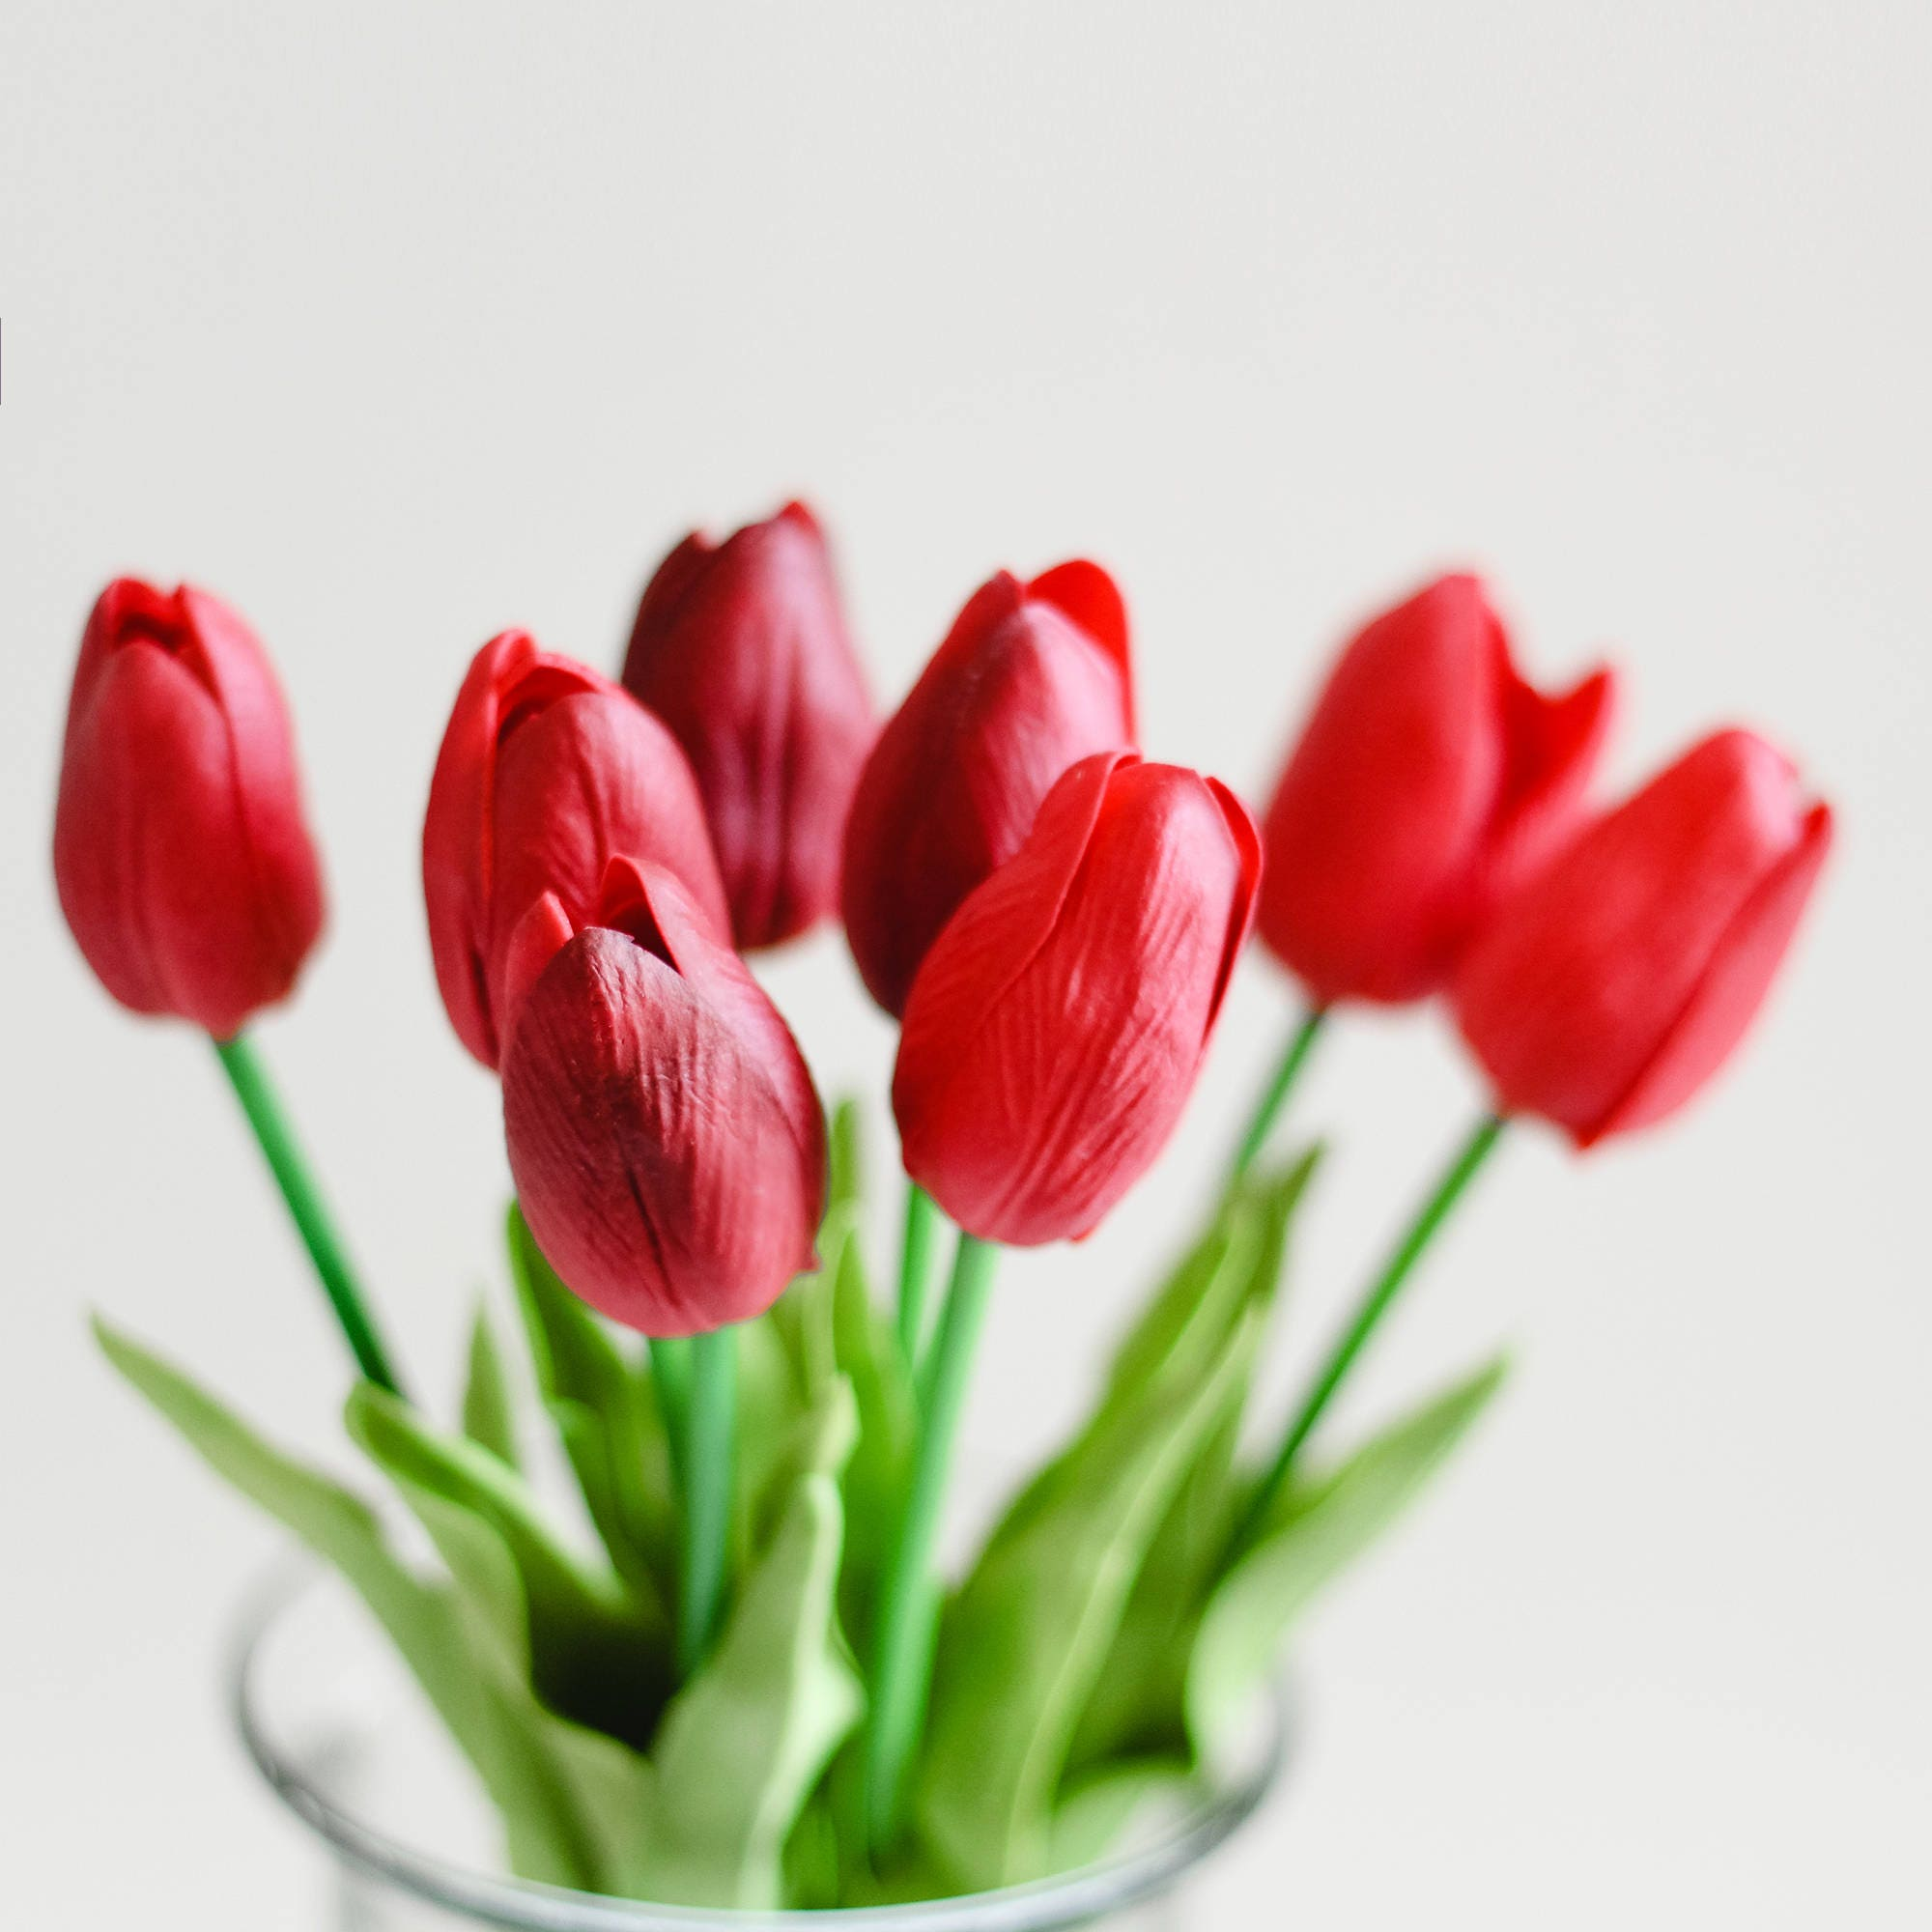 8pcs 32pcs Red Mini Tulip Tulips Real Touch Silk Flower Pu Etsy